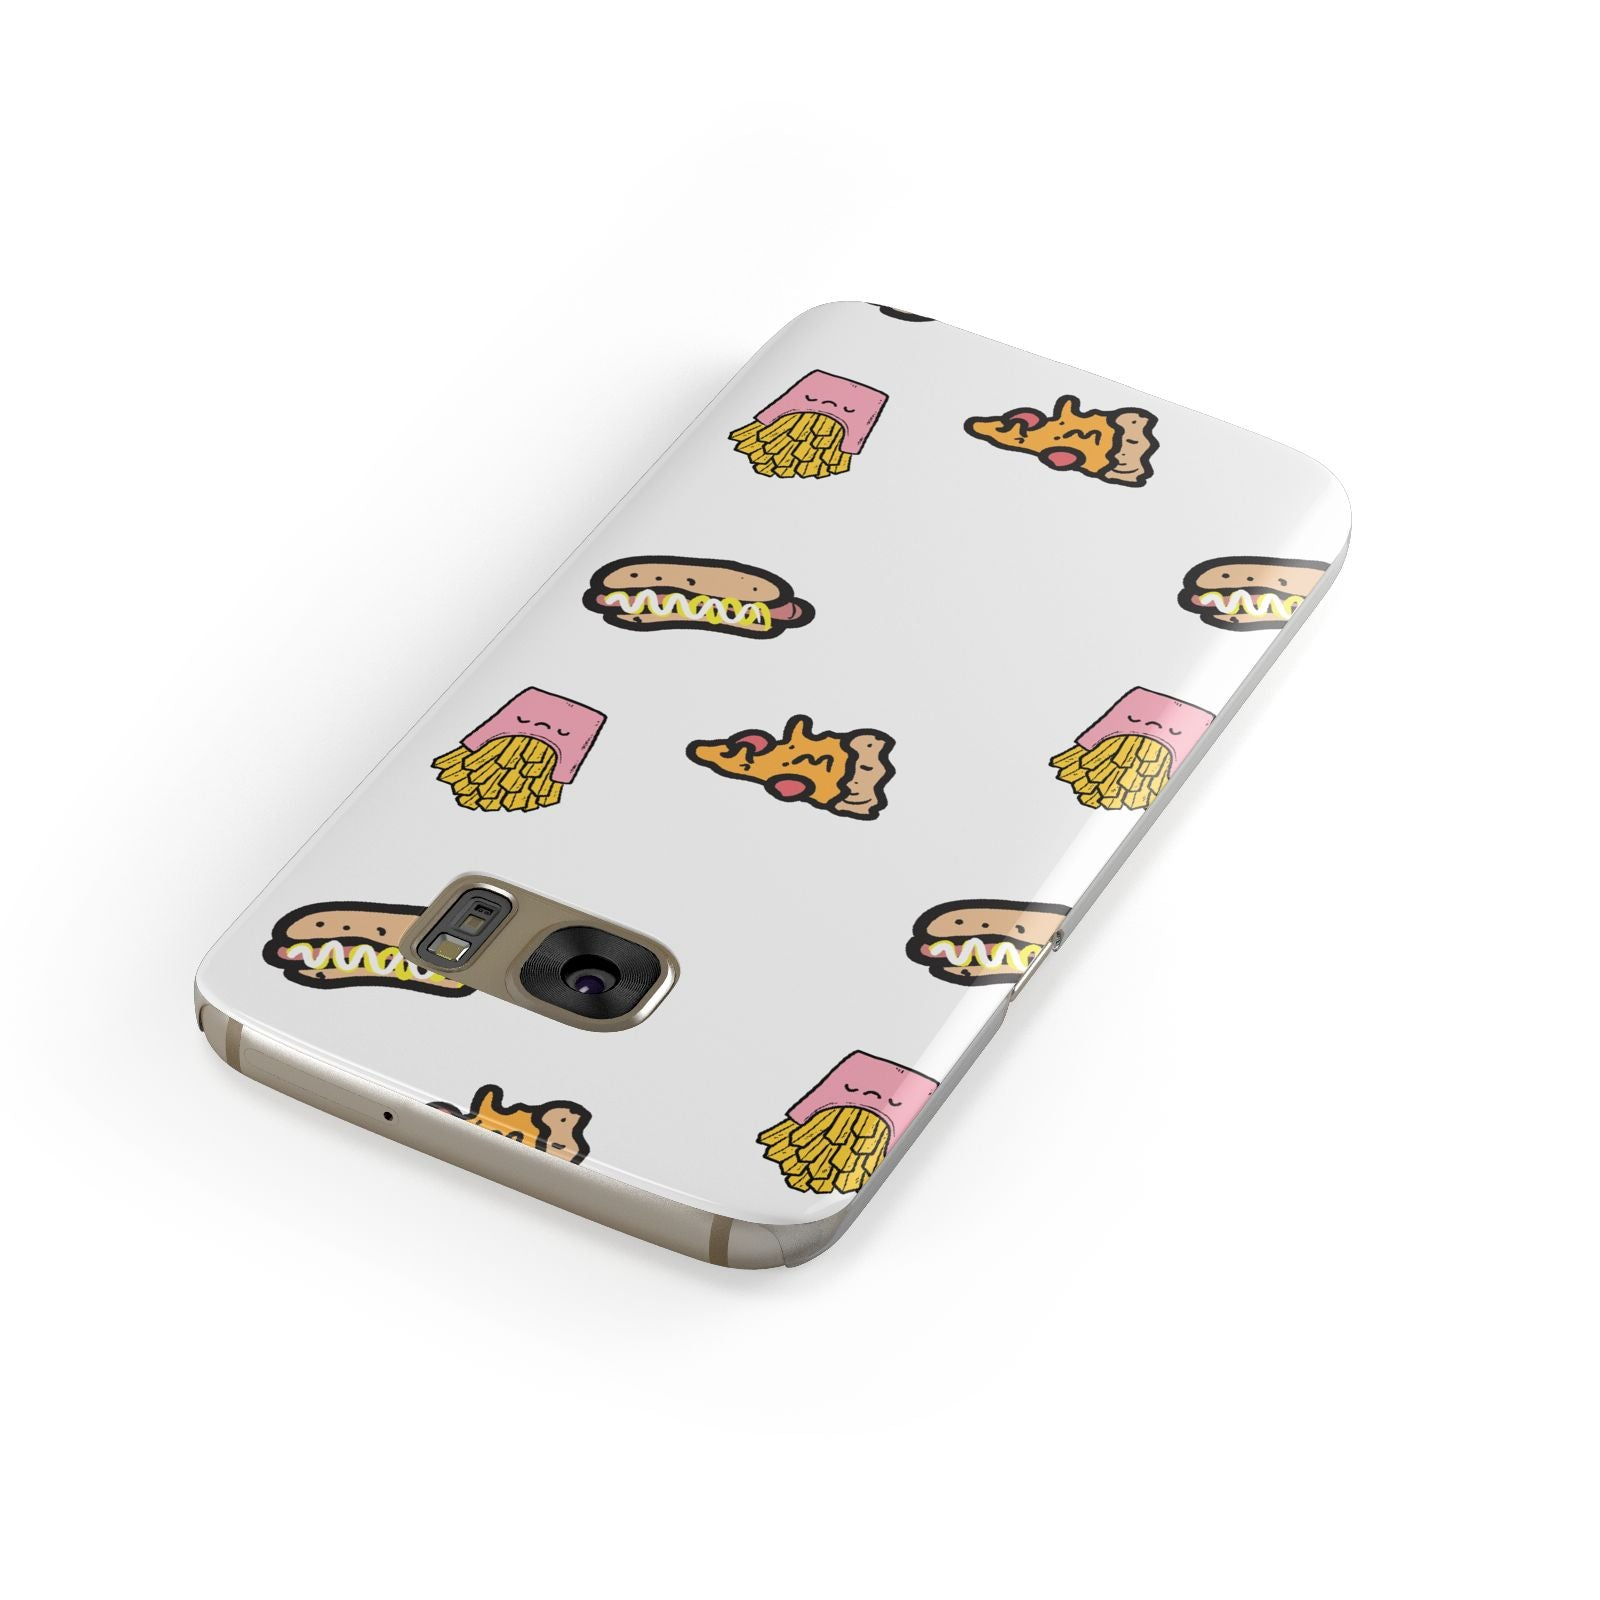 Fries Pizza Hot Dog Samsung Galaxy Case Front Close Up